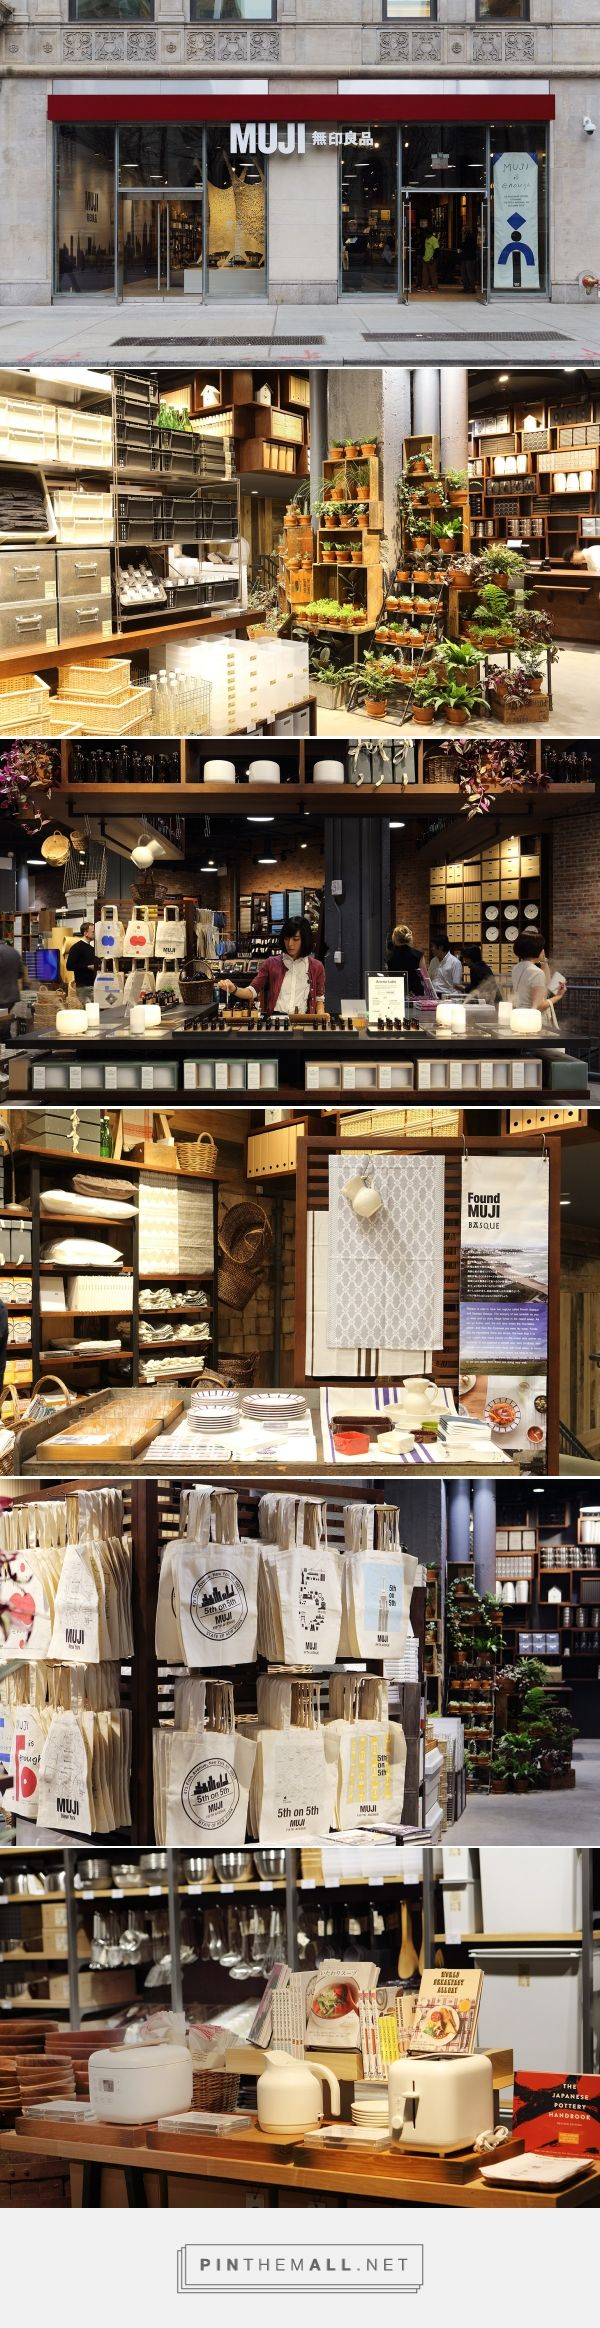 Flagship On Fifth Muji Opens Mammoth NYC Store